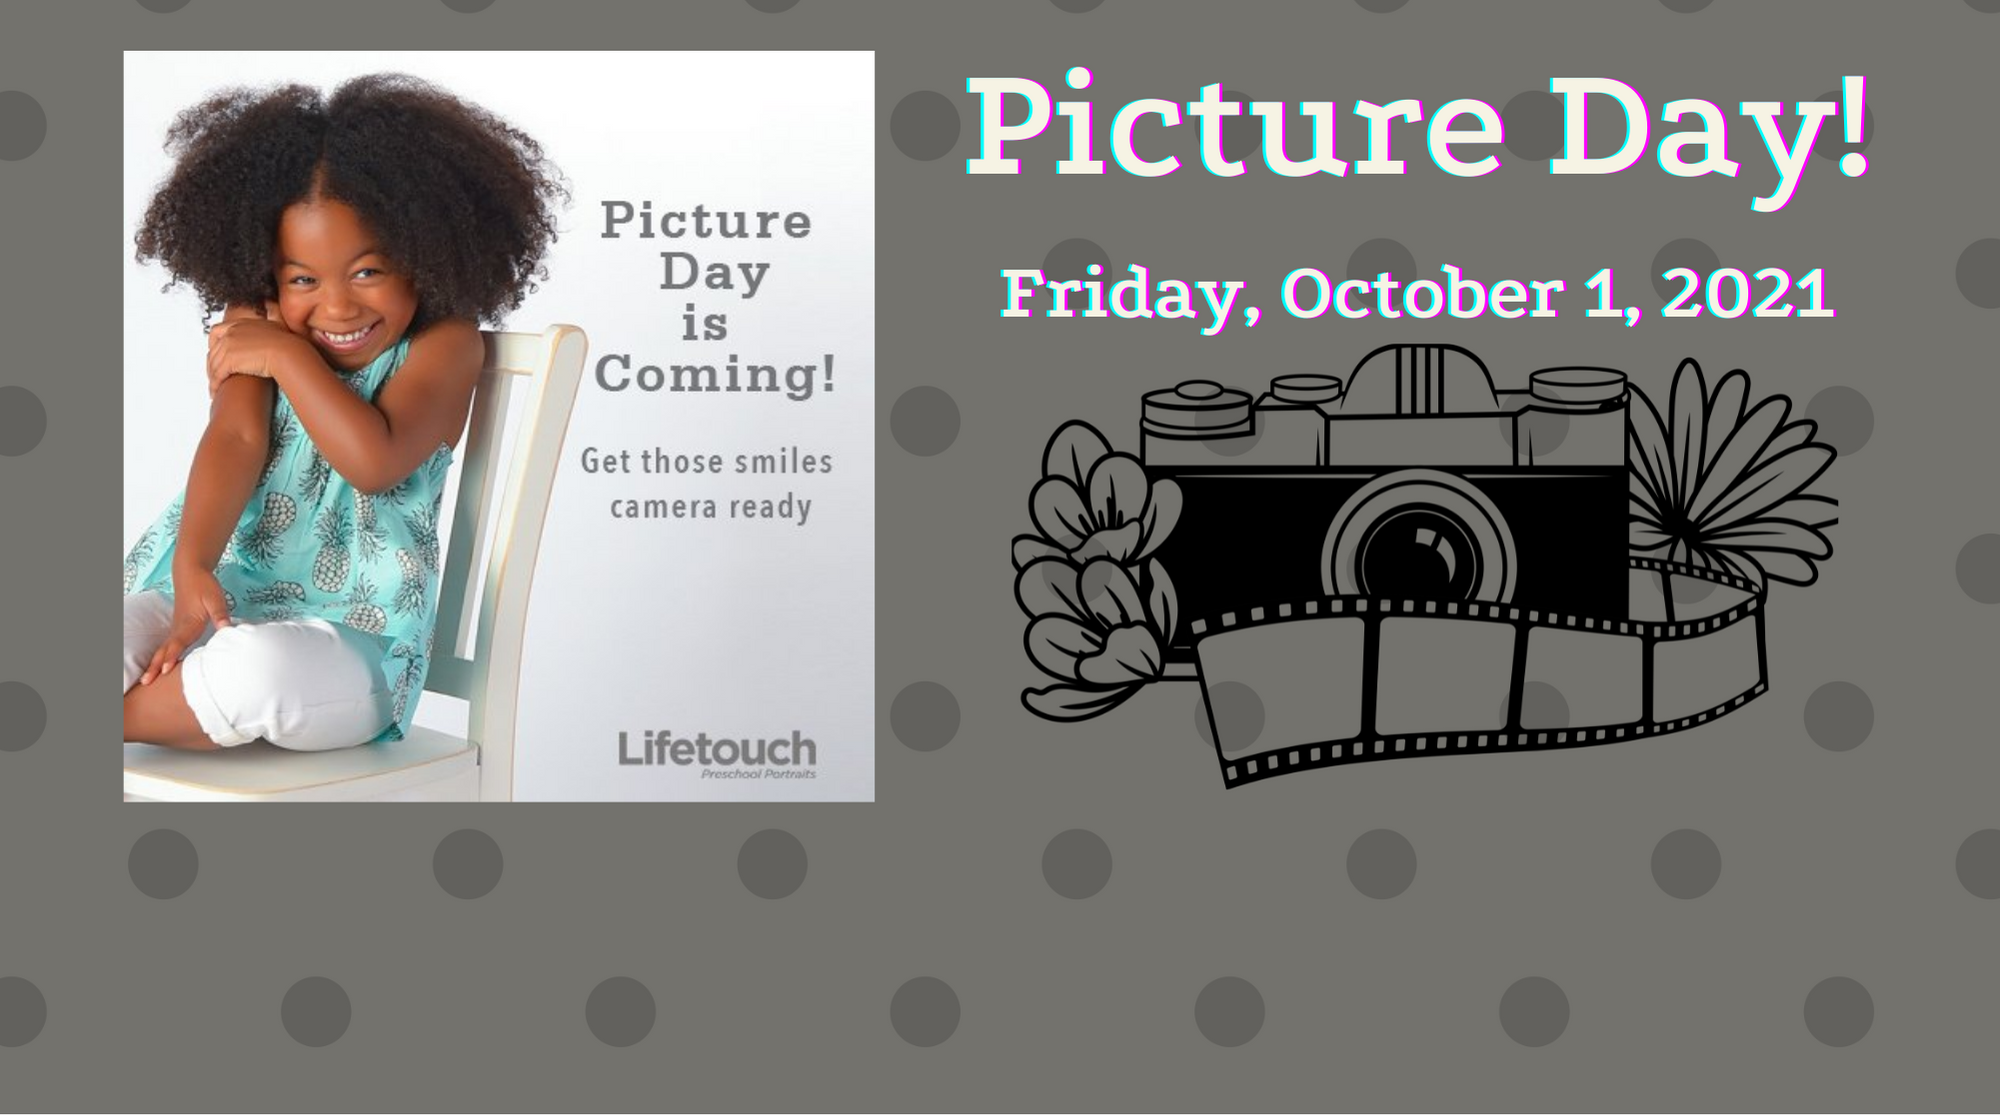 Picture Day is Friday, October 1st!